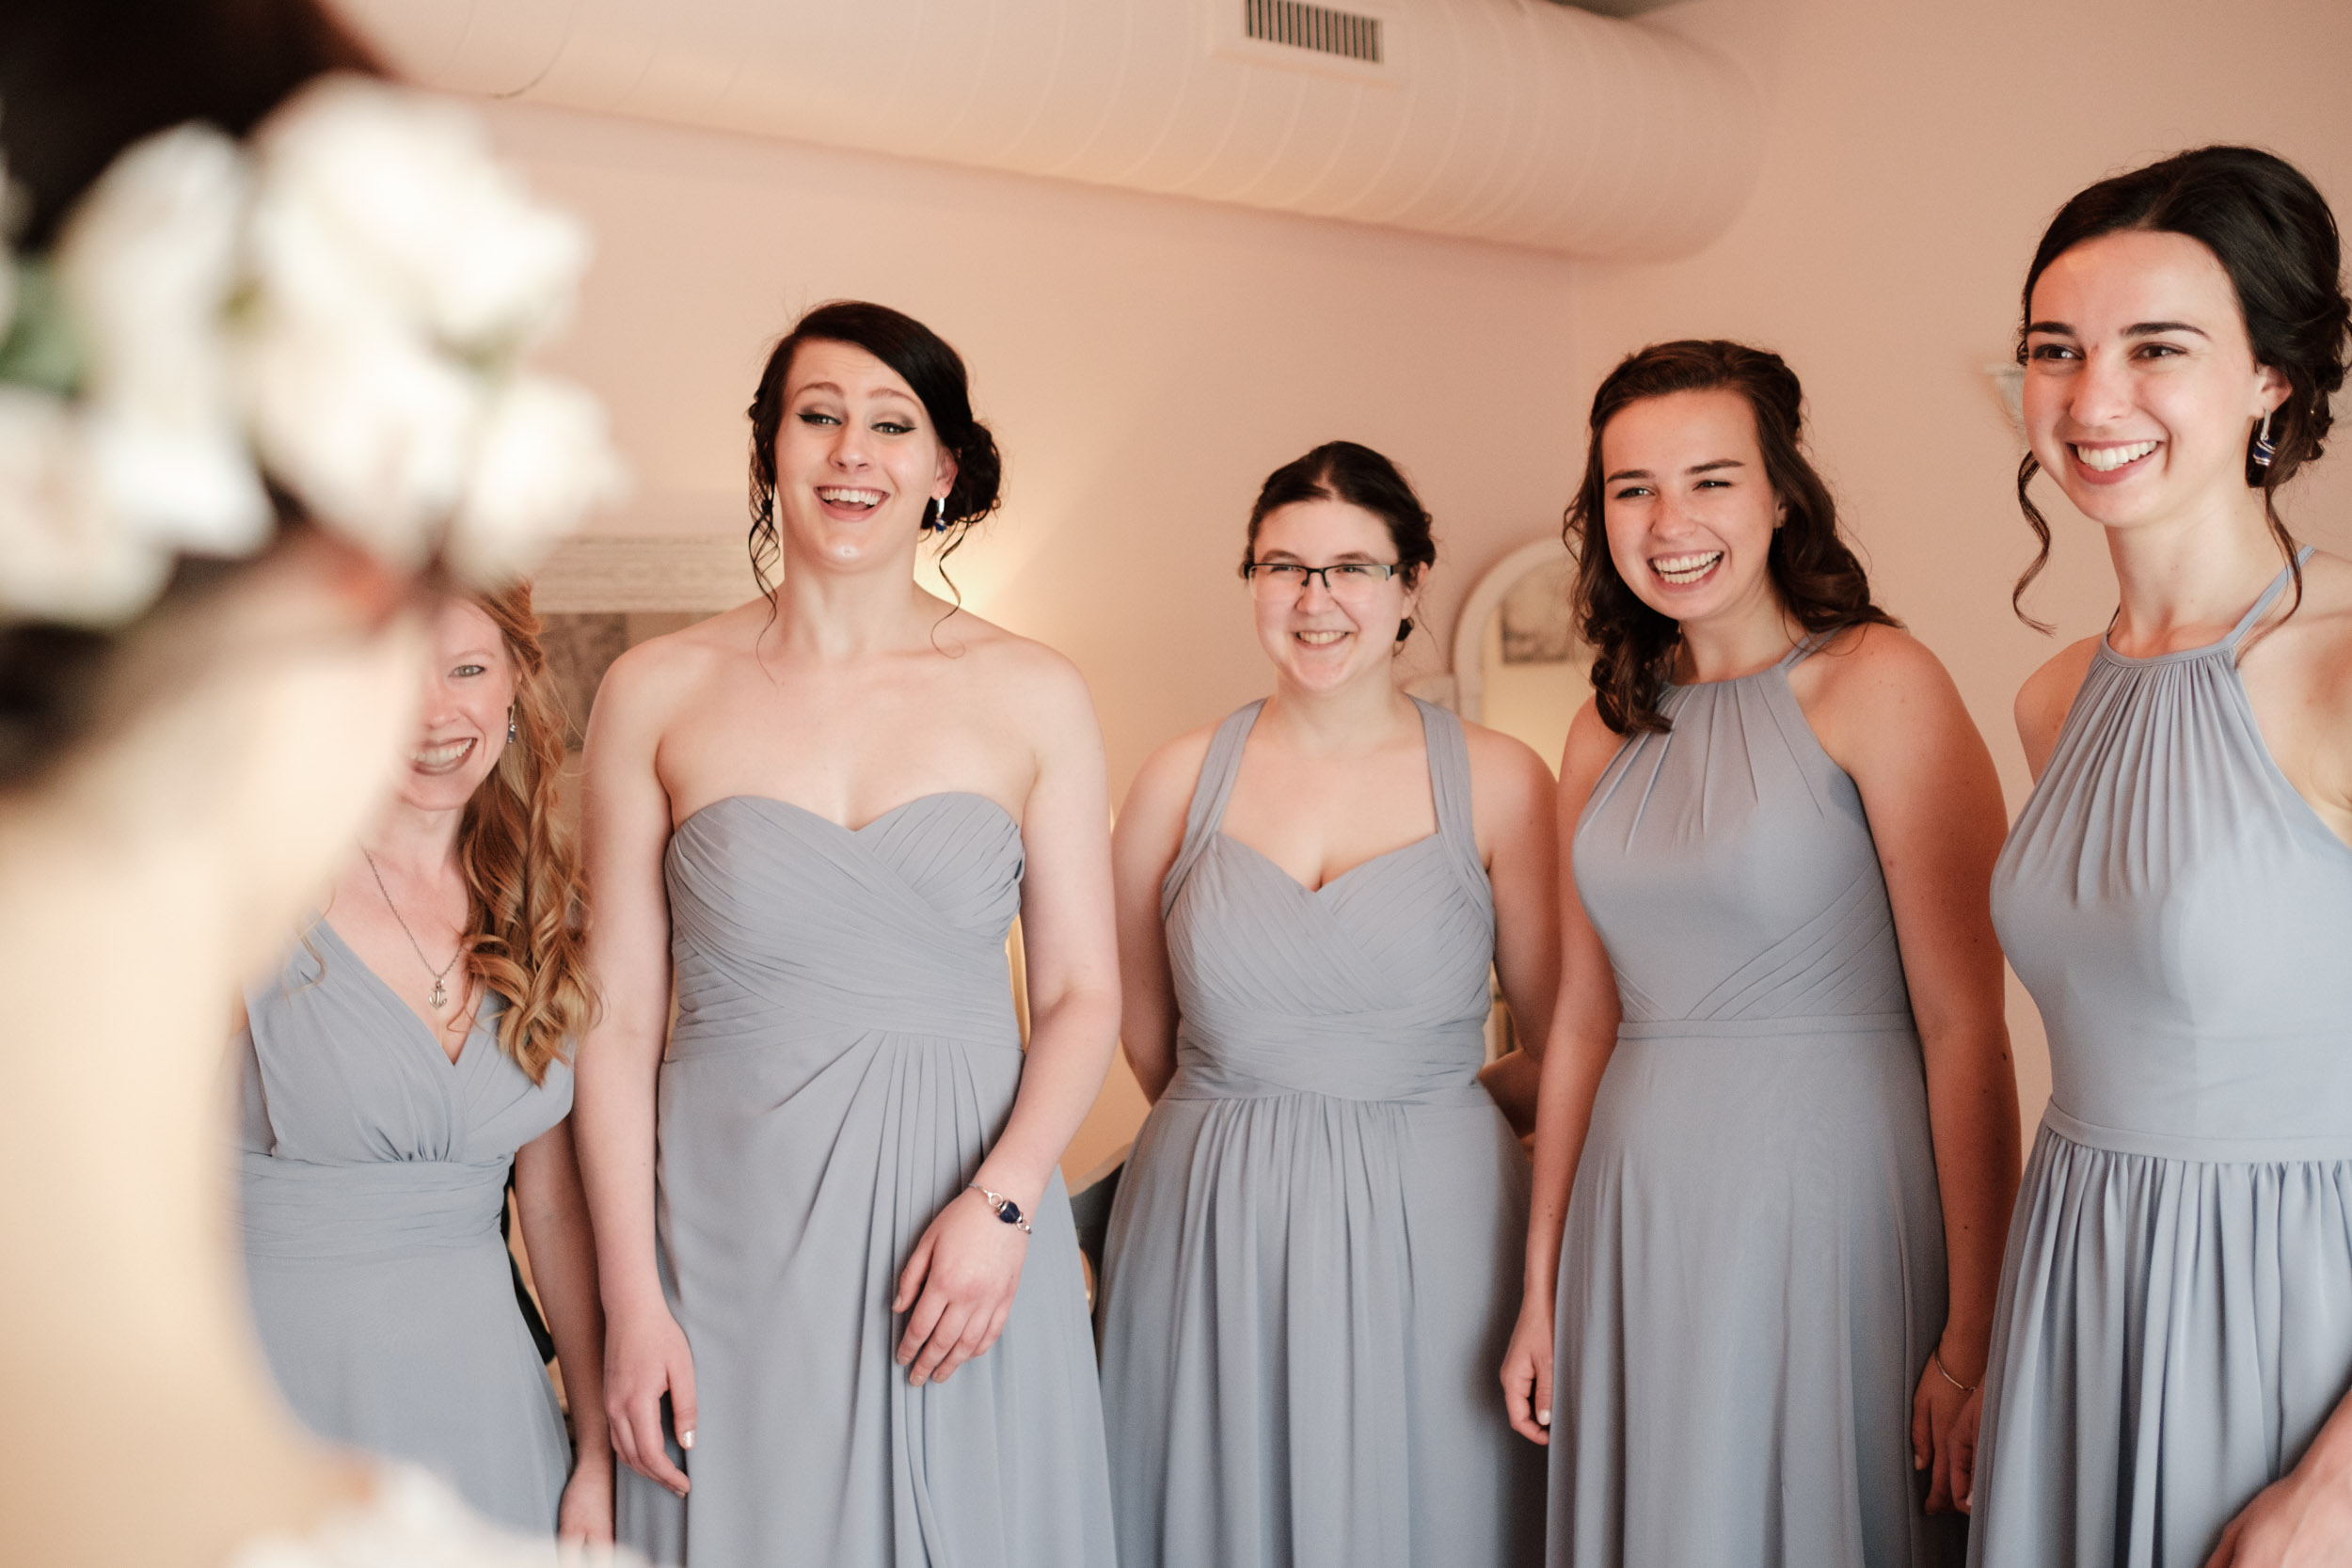 blue dress bridesmaids dresses first look of bride at gardens of woodstock on wedding day